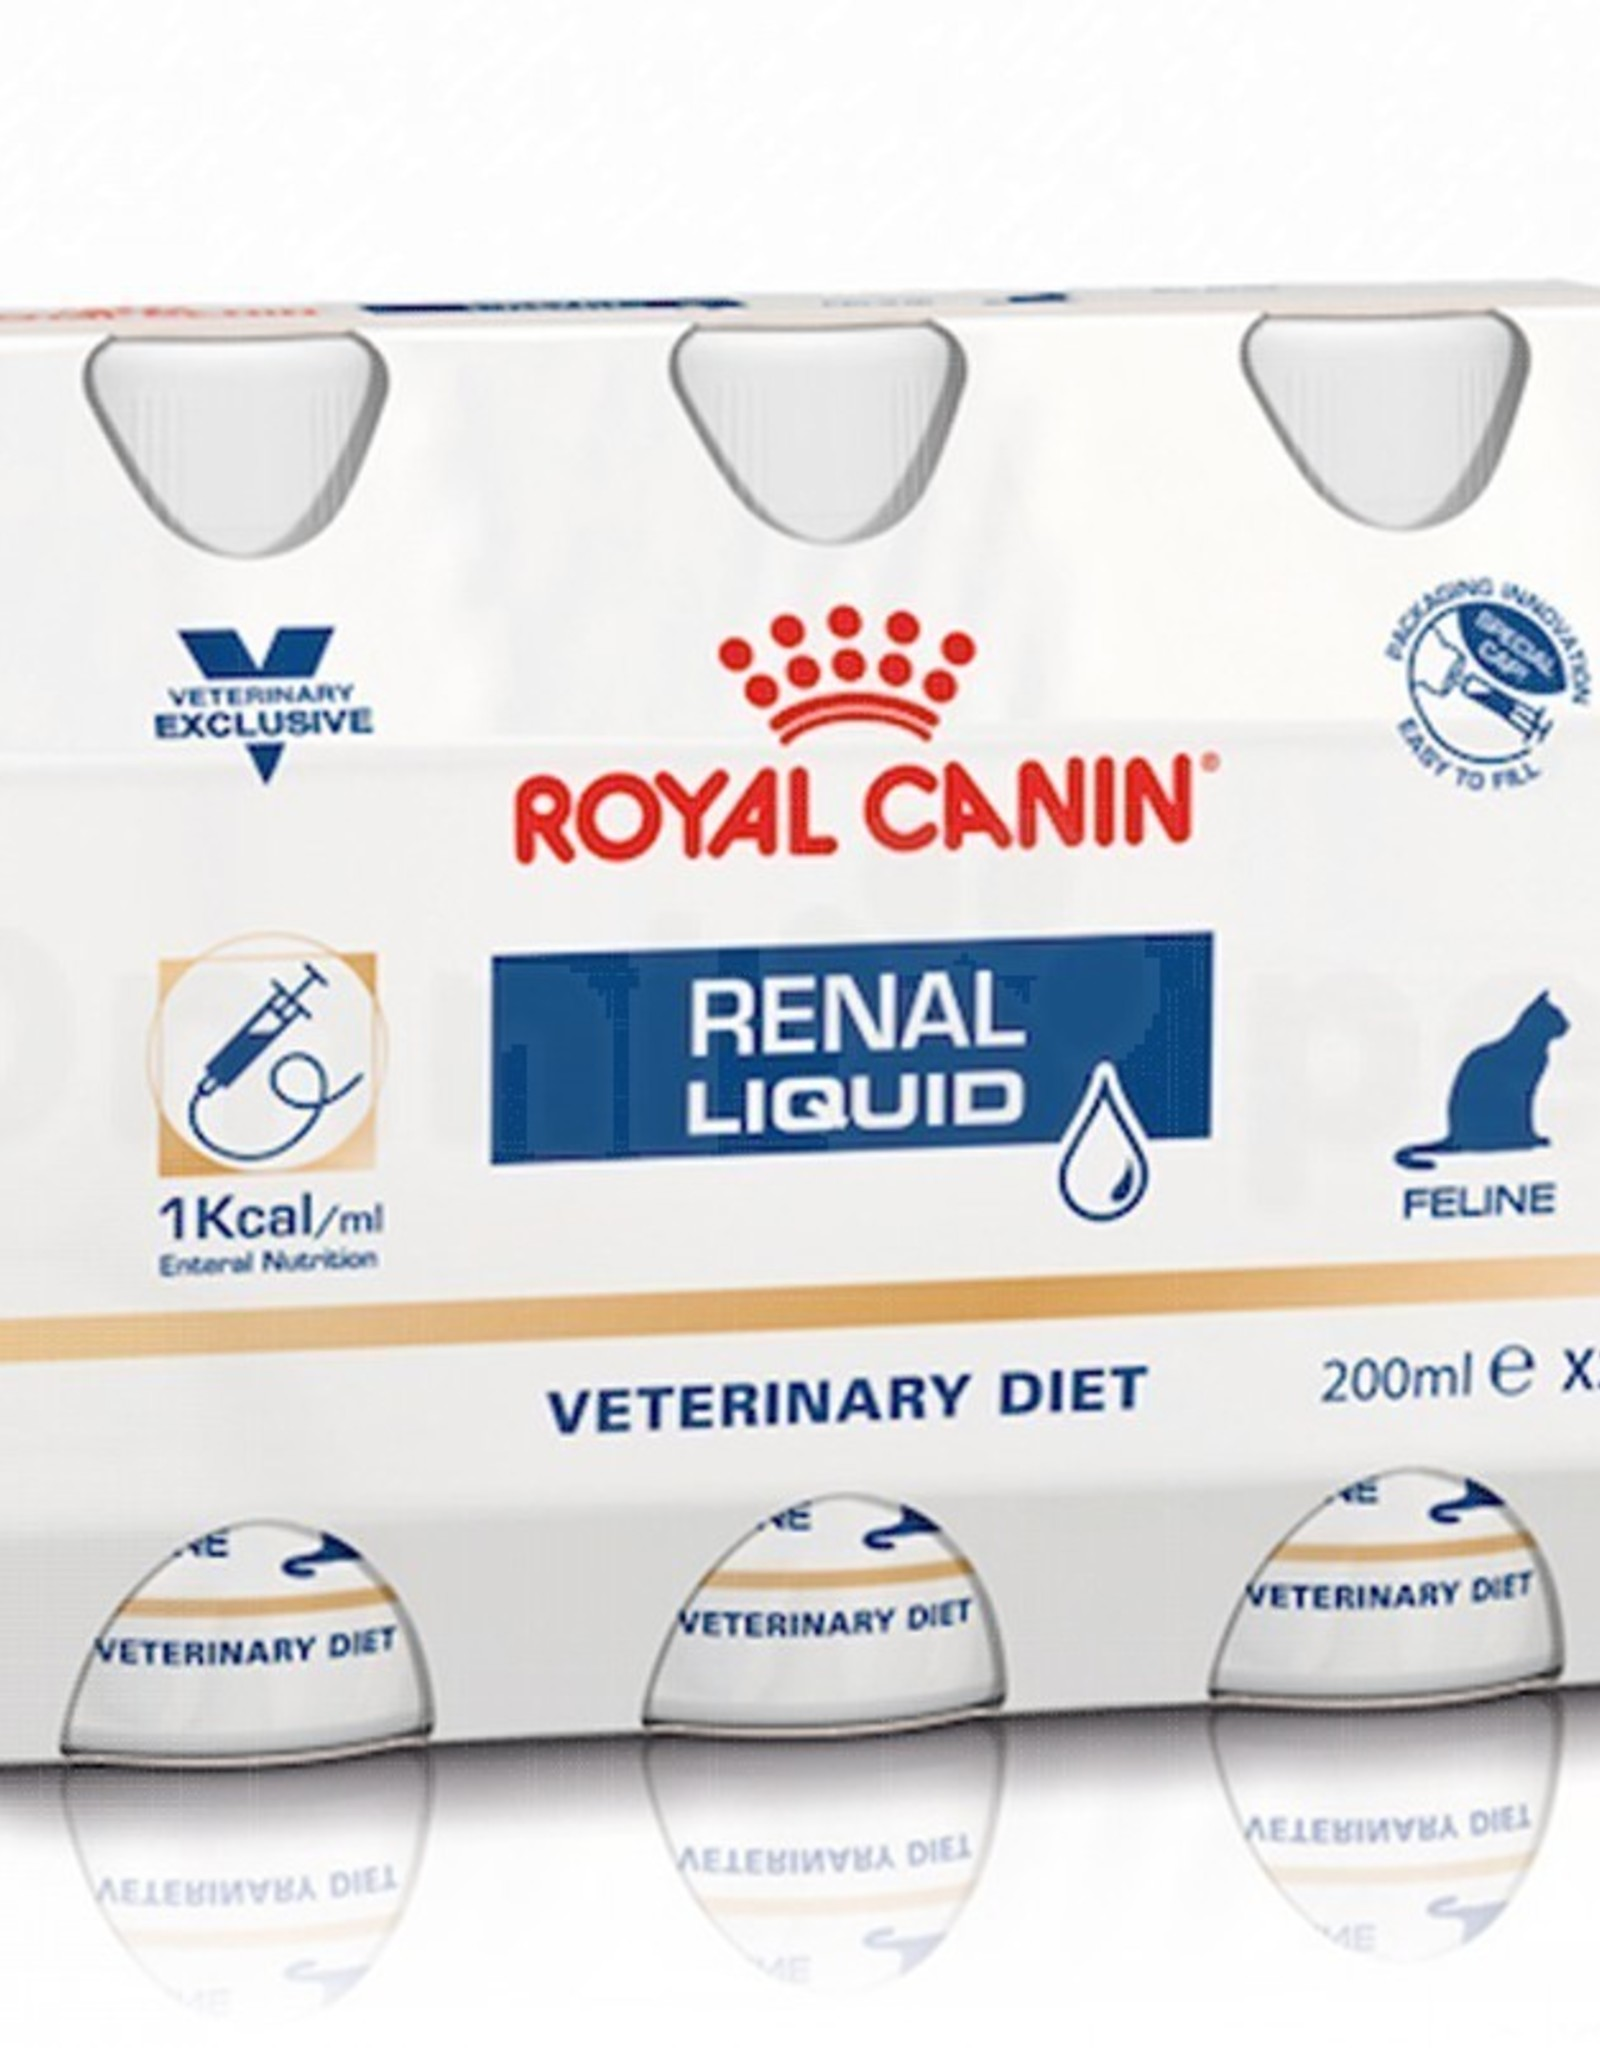 Royal Canin Royal Canin Renal Liquid Katze 3x200ml